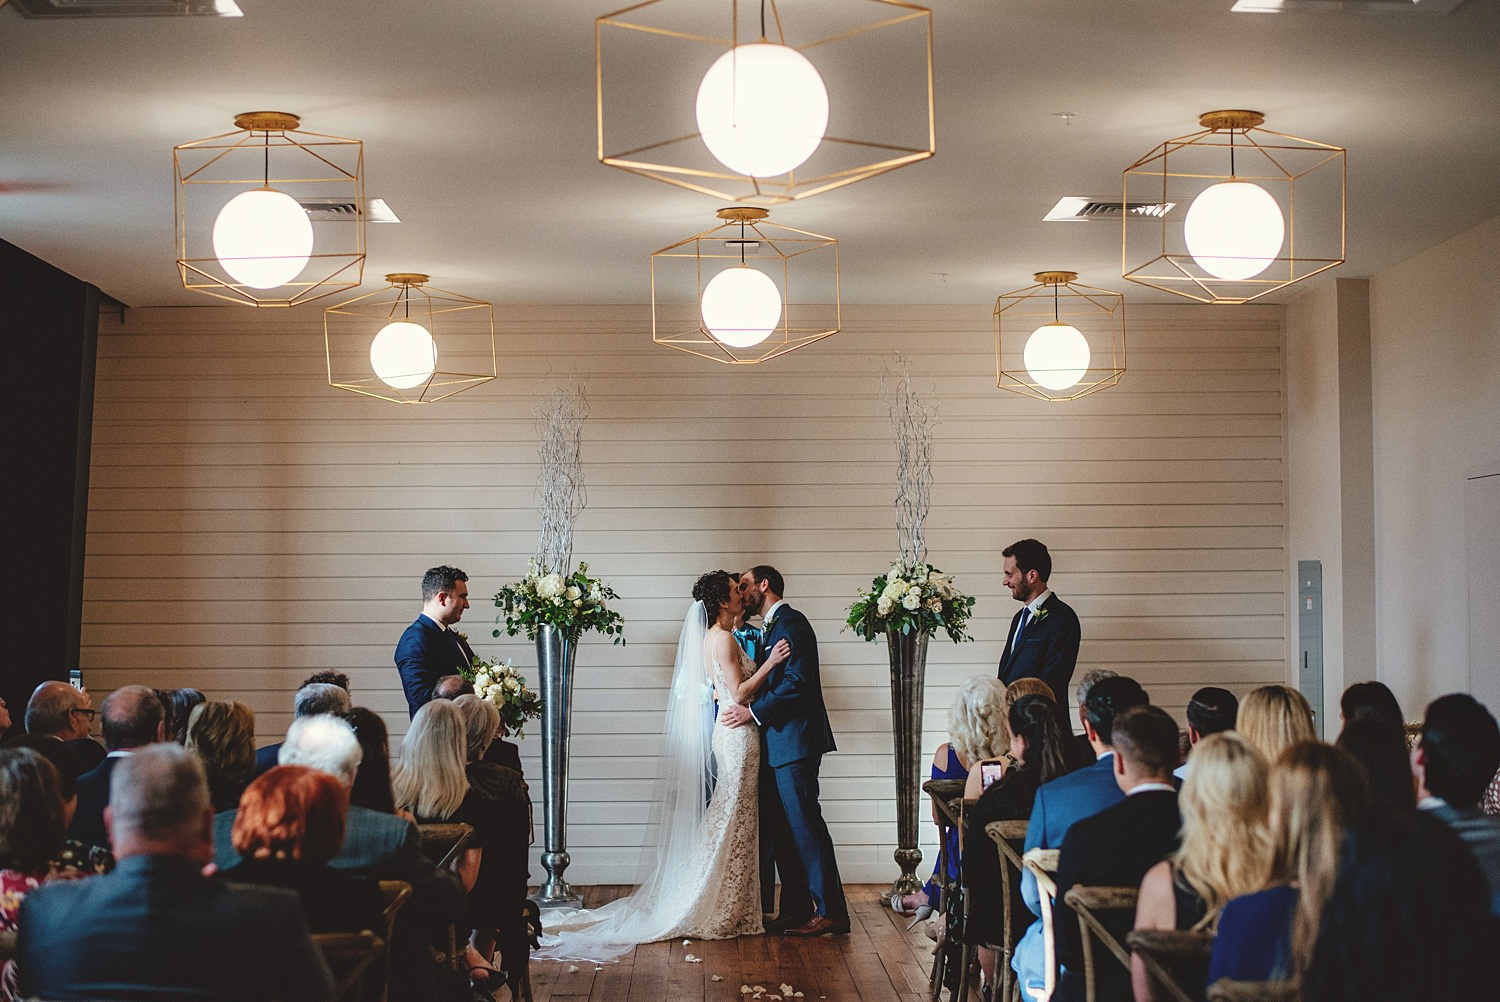 armature works wedding photographer